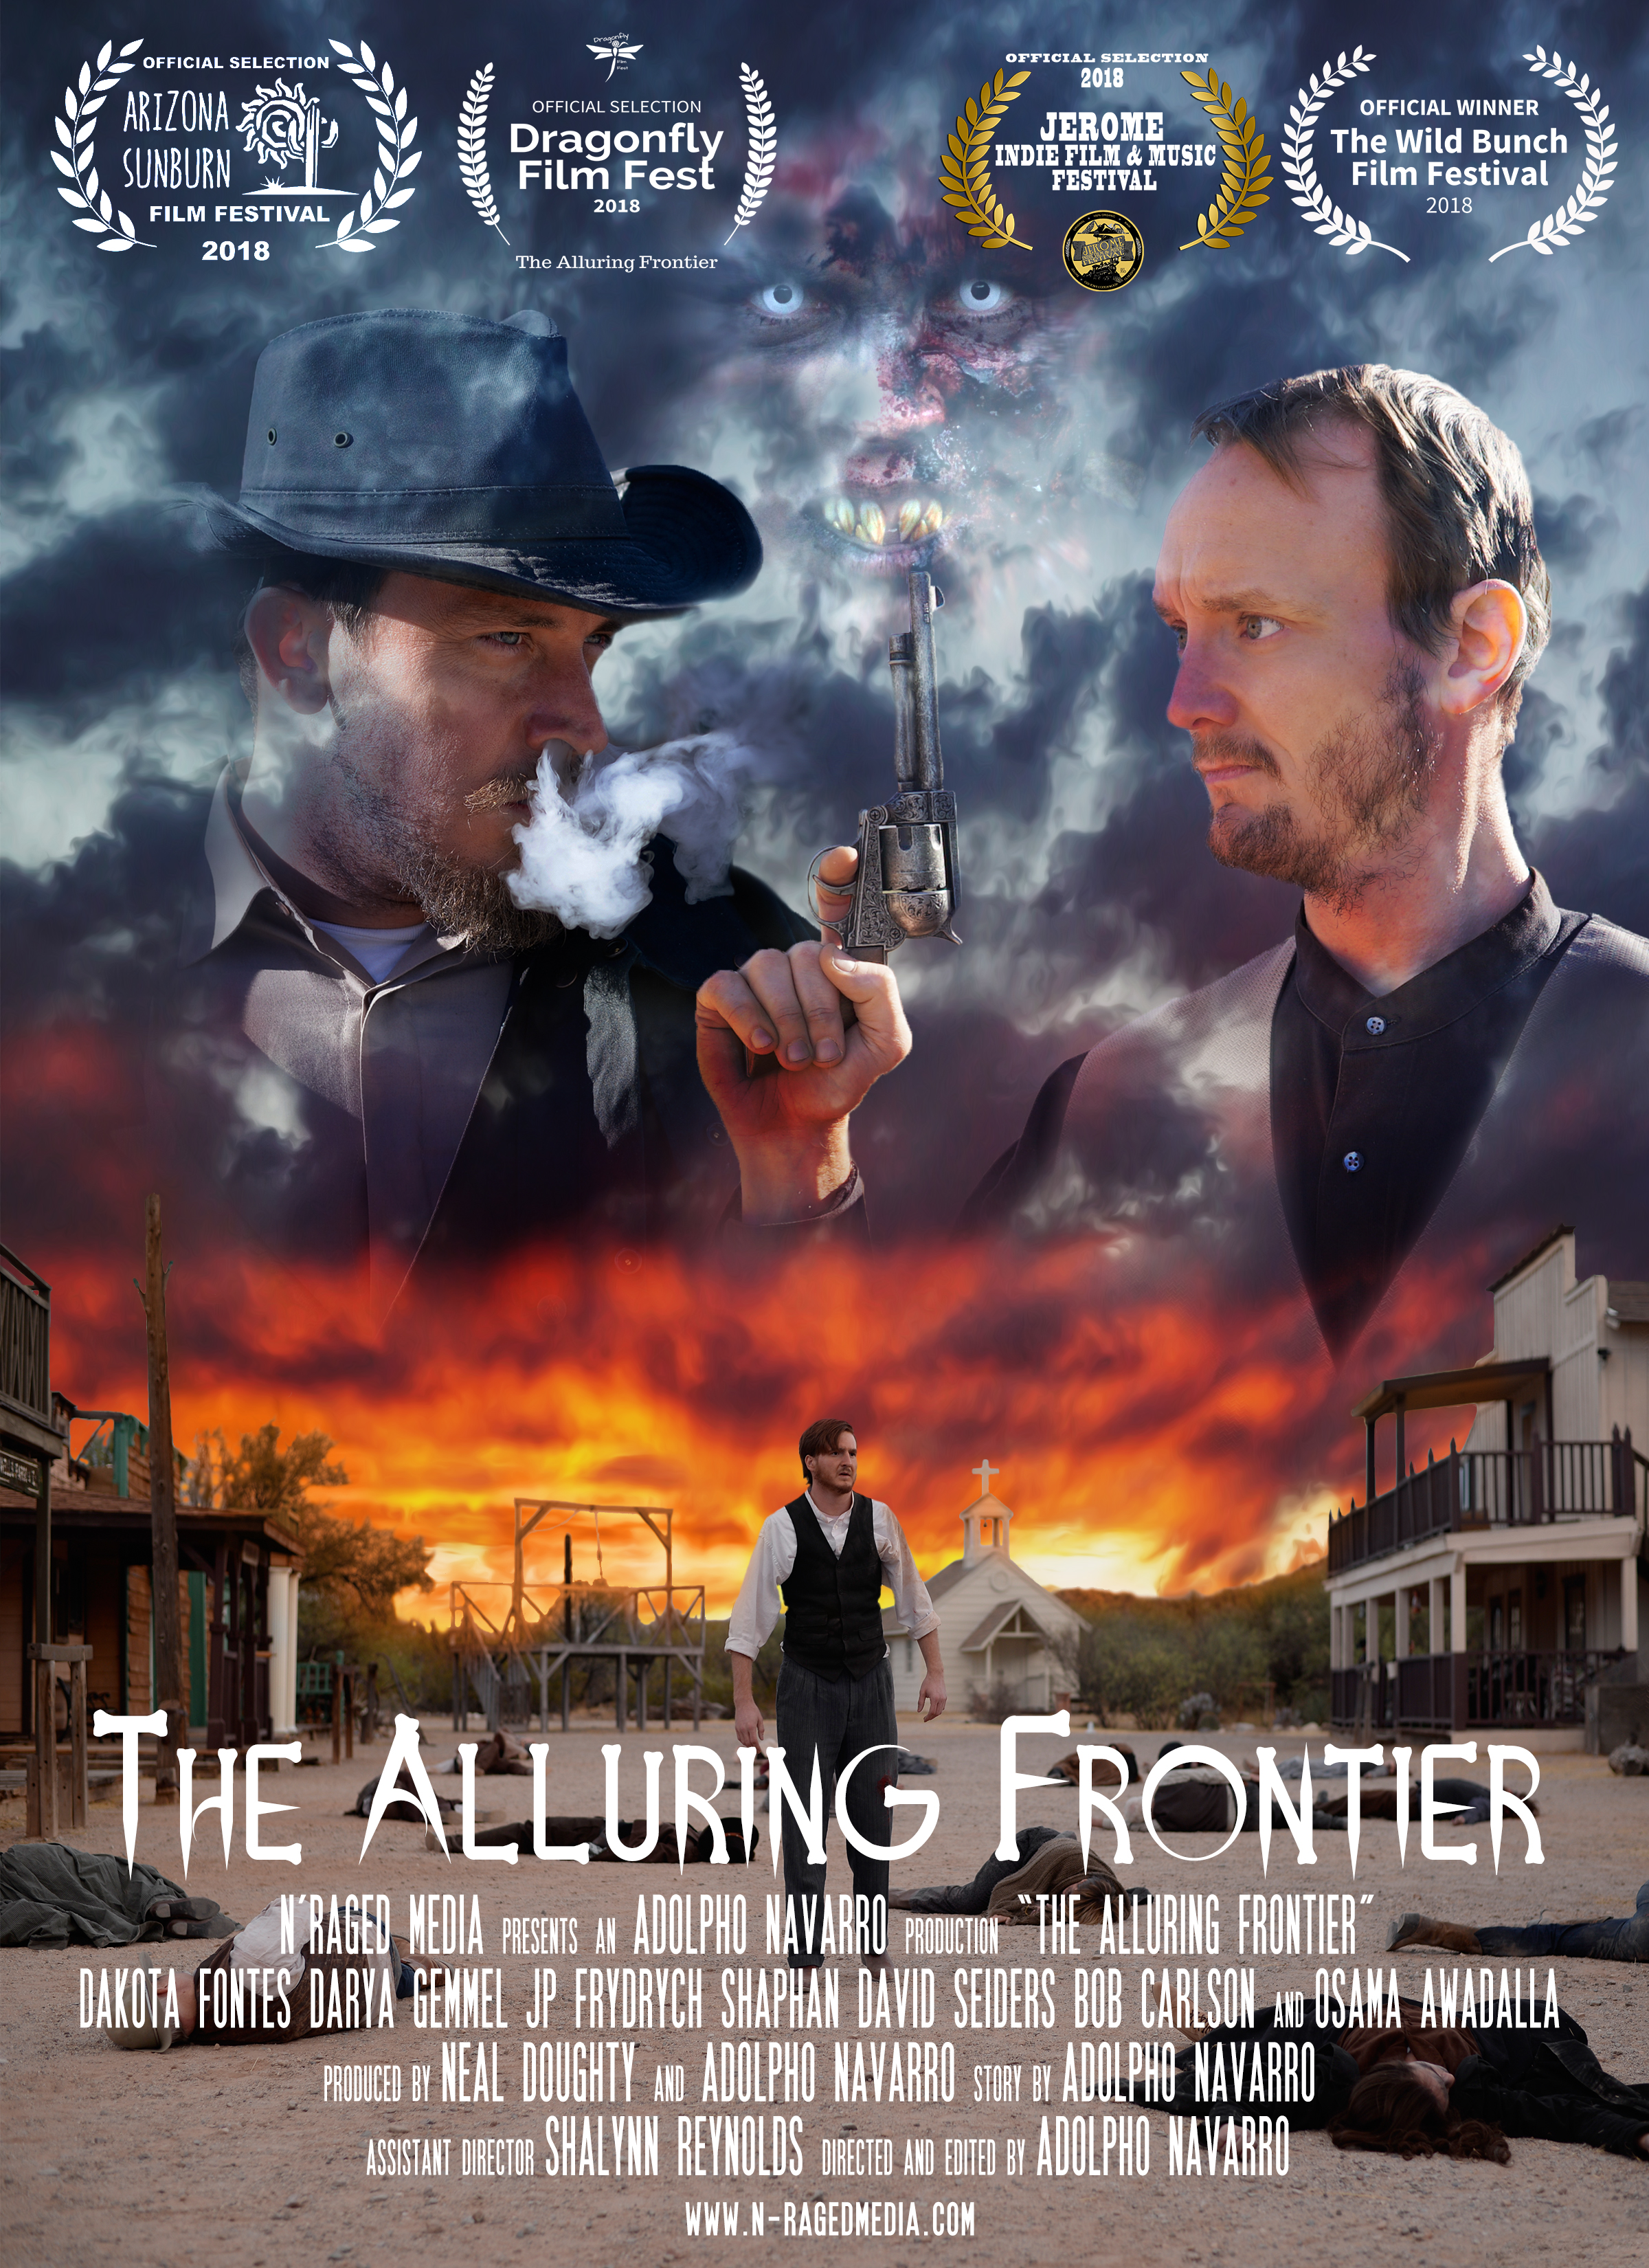 Best Horror/Thriller Short FilmBest Supporting Actress - The Alluring FrontierWildbunch Film Festival 2018Official SelectionJerome Film Festival 2018Arizona Sunburn Film Festival 2018Dragonfly Film Festival 2018